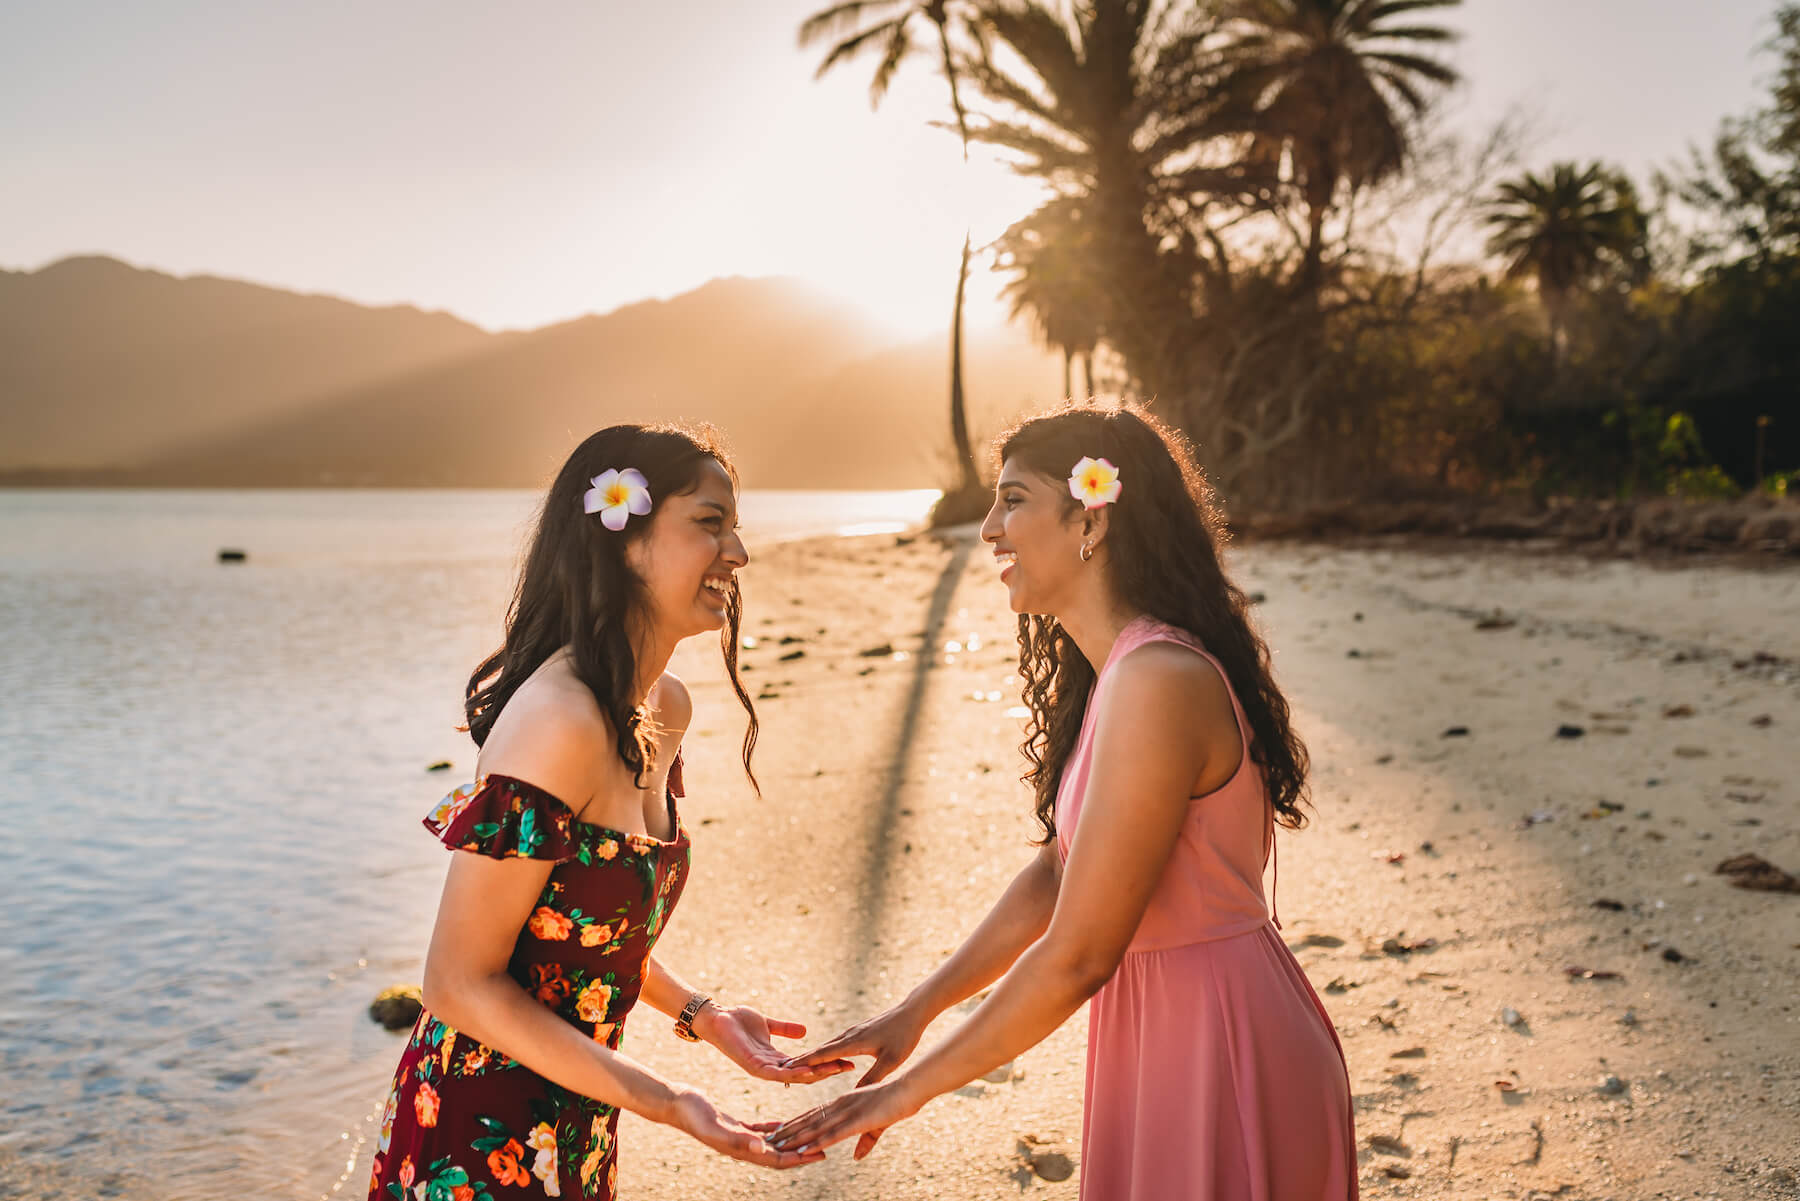 Two friends holding hands and looking at each other on Kualoa beach, Honolulu, Hawaii